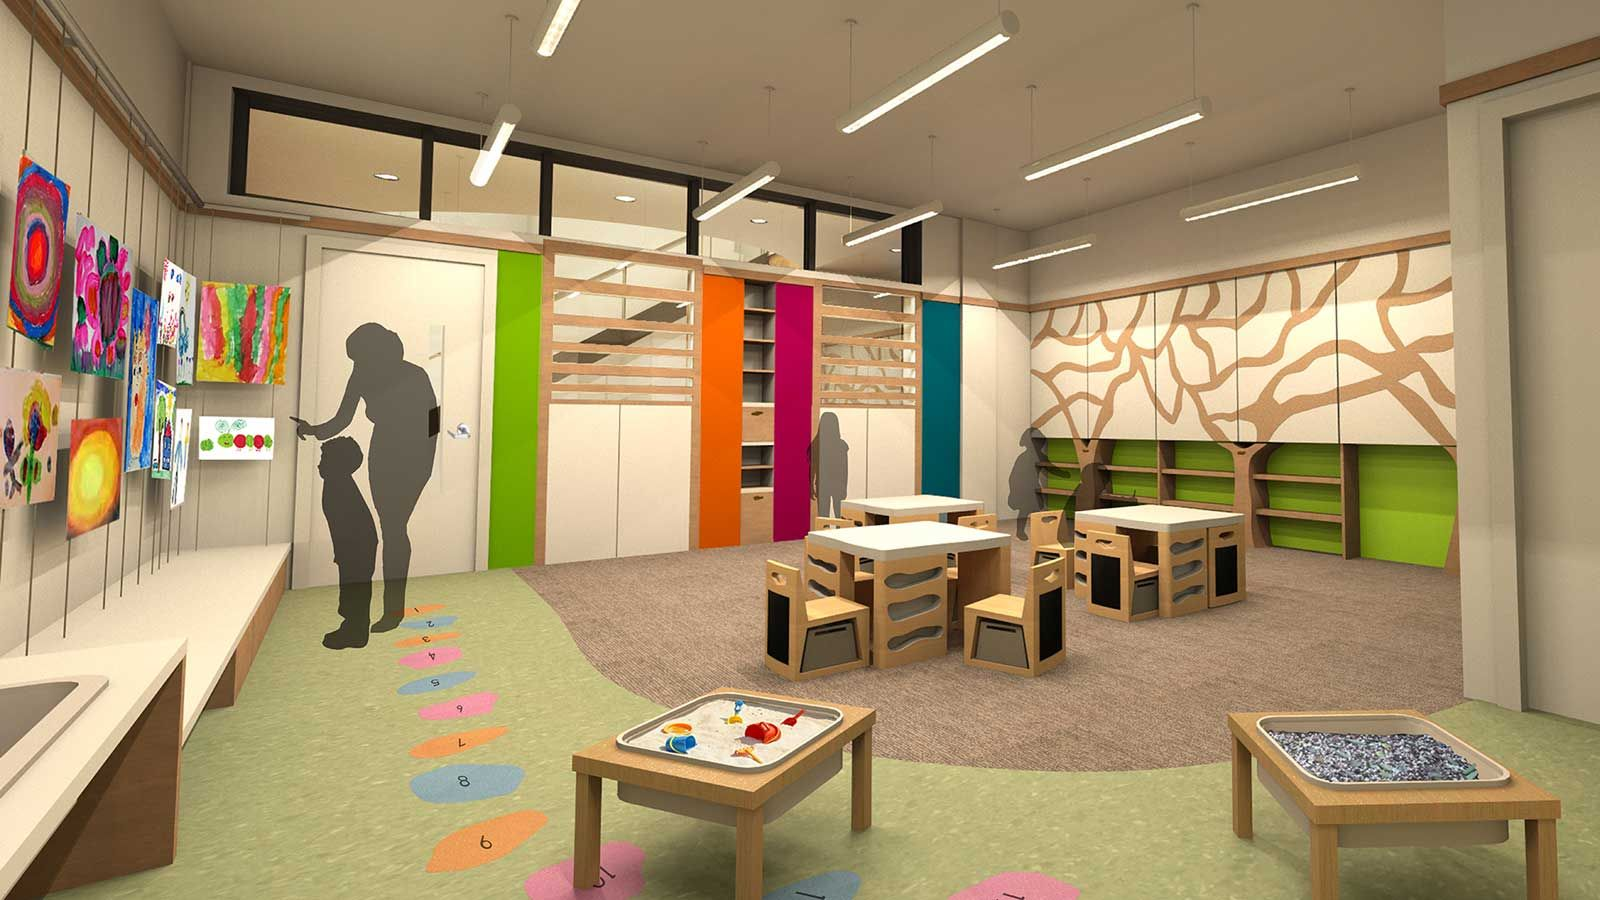 best interior design school modern interior kids classroom school design - Home Design School